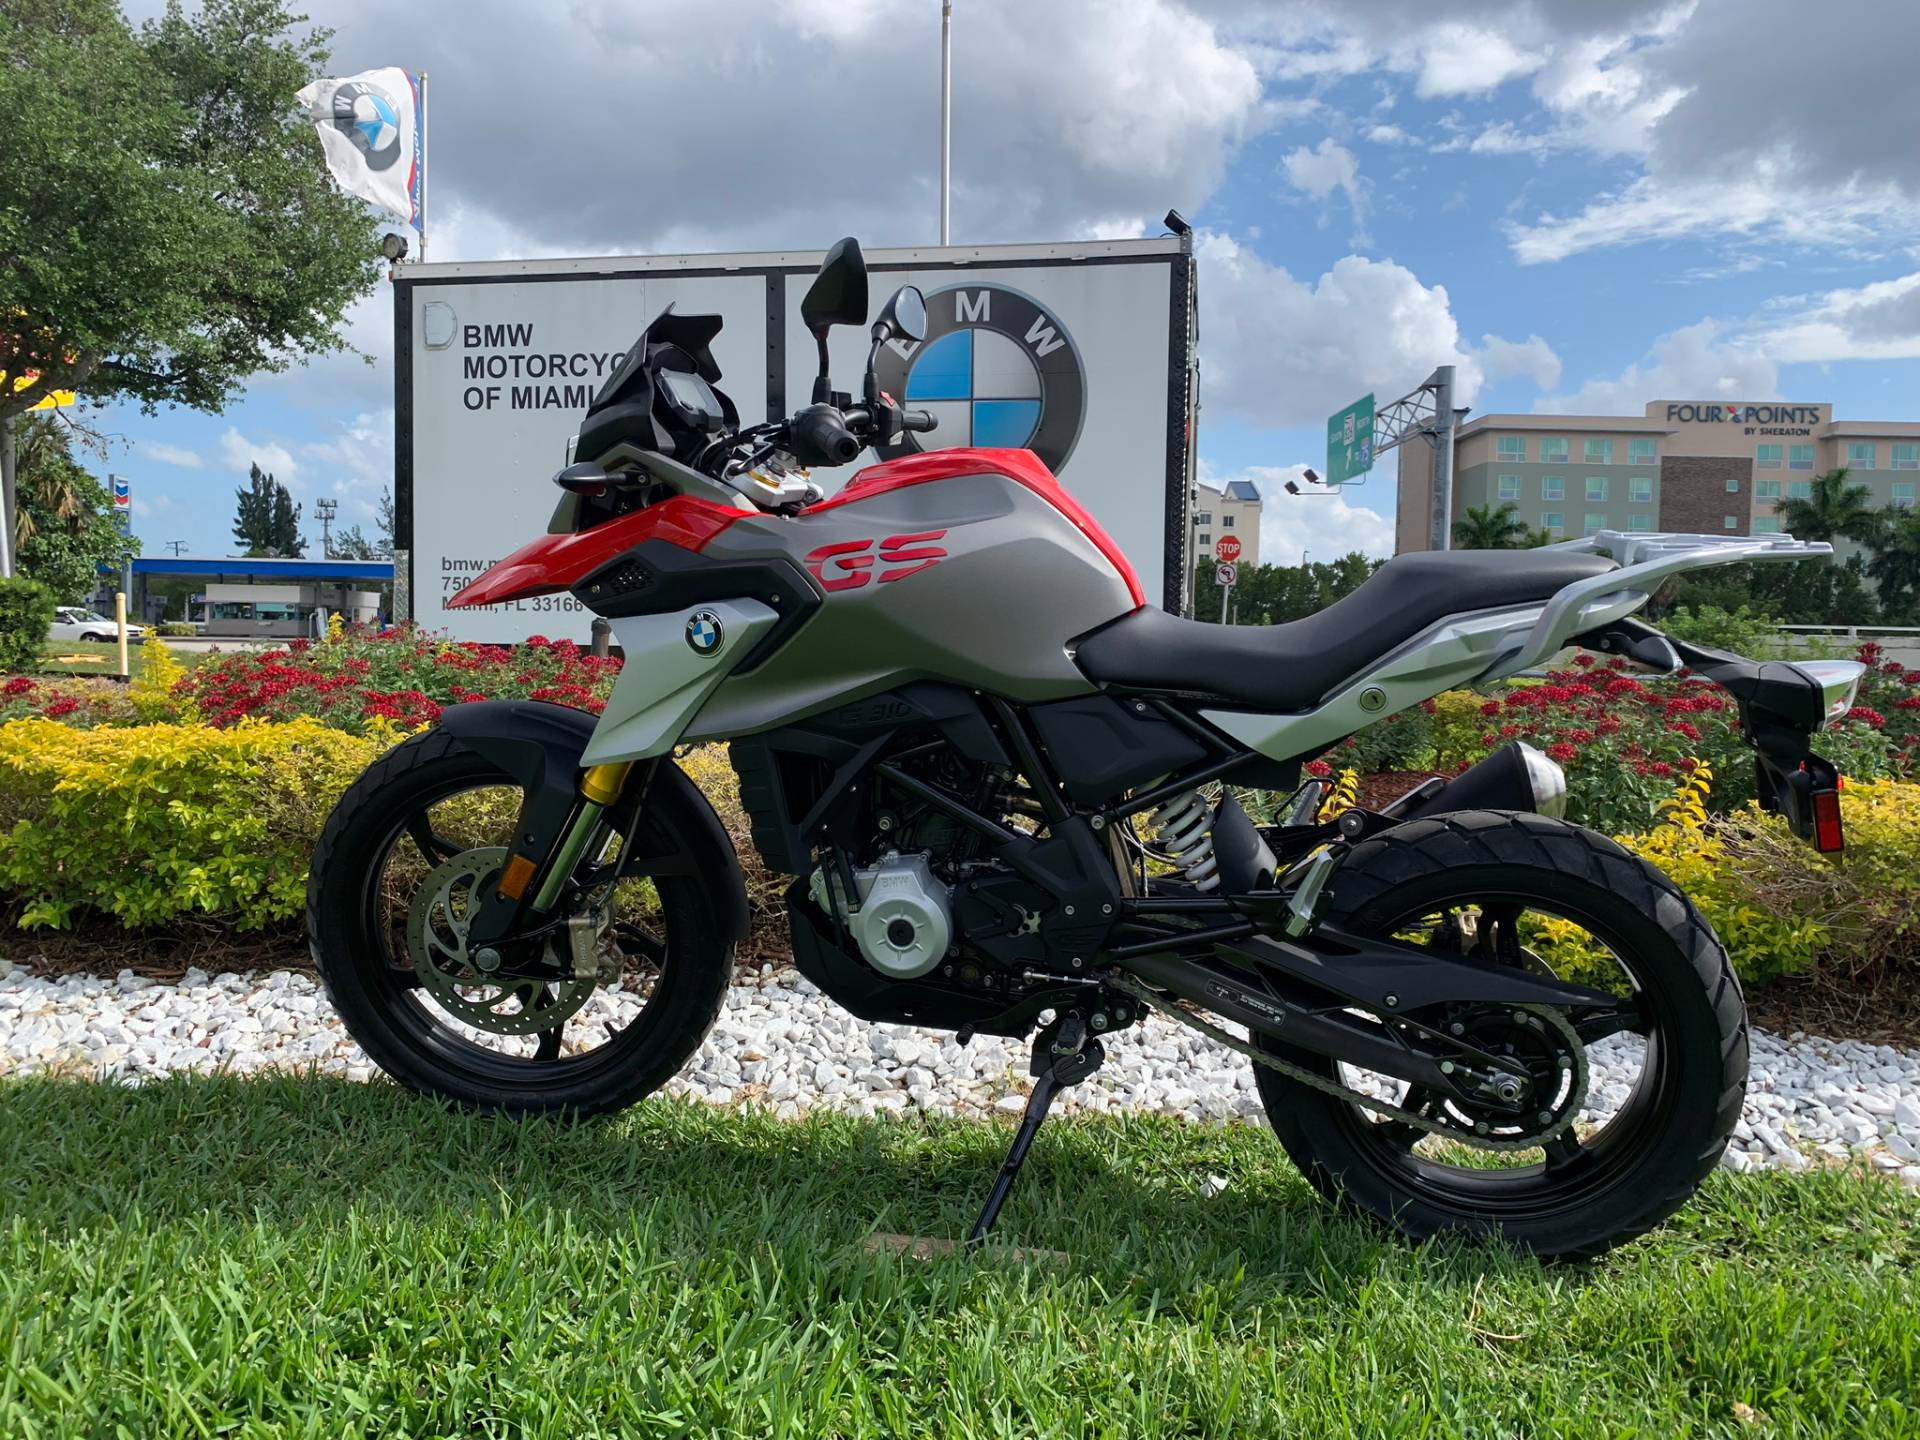 New 2019 BMW G 310 GS for sale, BMW G 310GS for sale, BMW Motorcycle GS, new BMW GS, Spirit of GS, BMW Motorcycles of Miami, Motorcycles of Miami, Motorcycles Miami, New Motorcycles, Used Motorcycles, pre-owned. #BMWMotorcyclesOfMiami #MotorcyclesOfMiami. - Photo 2